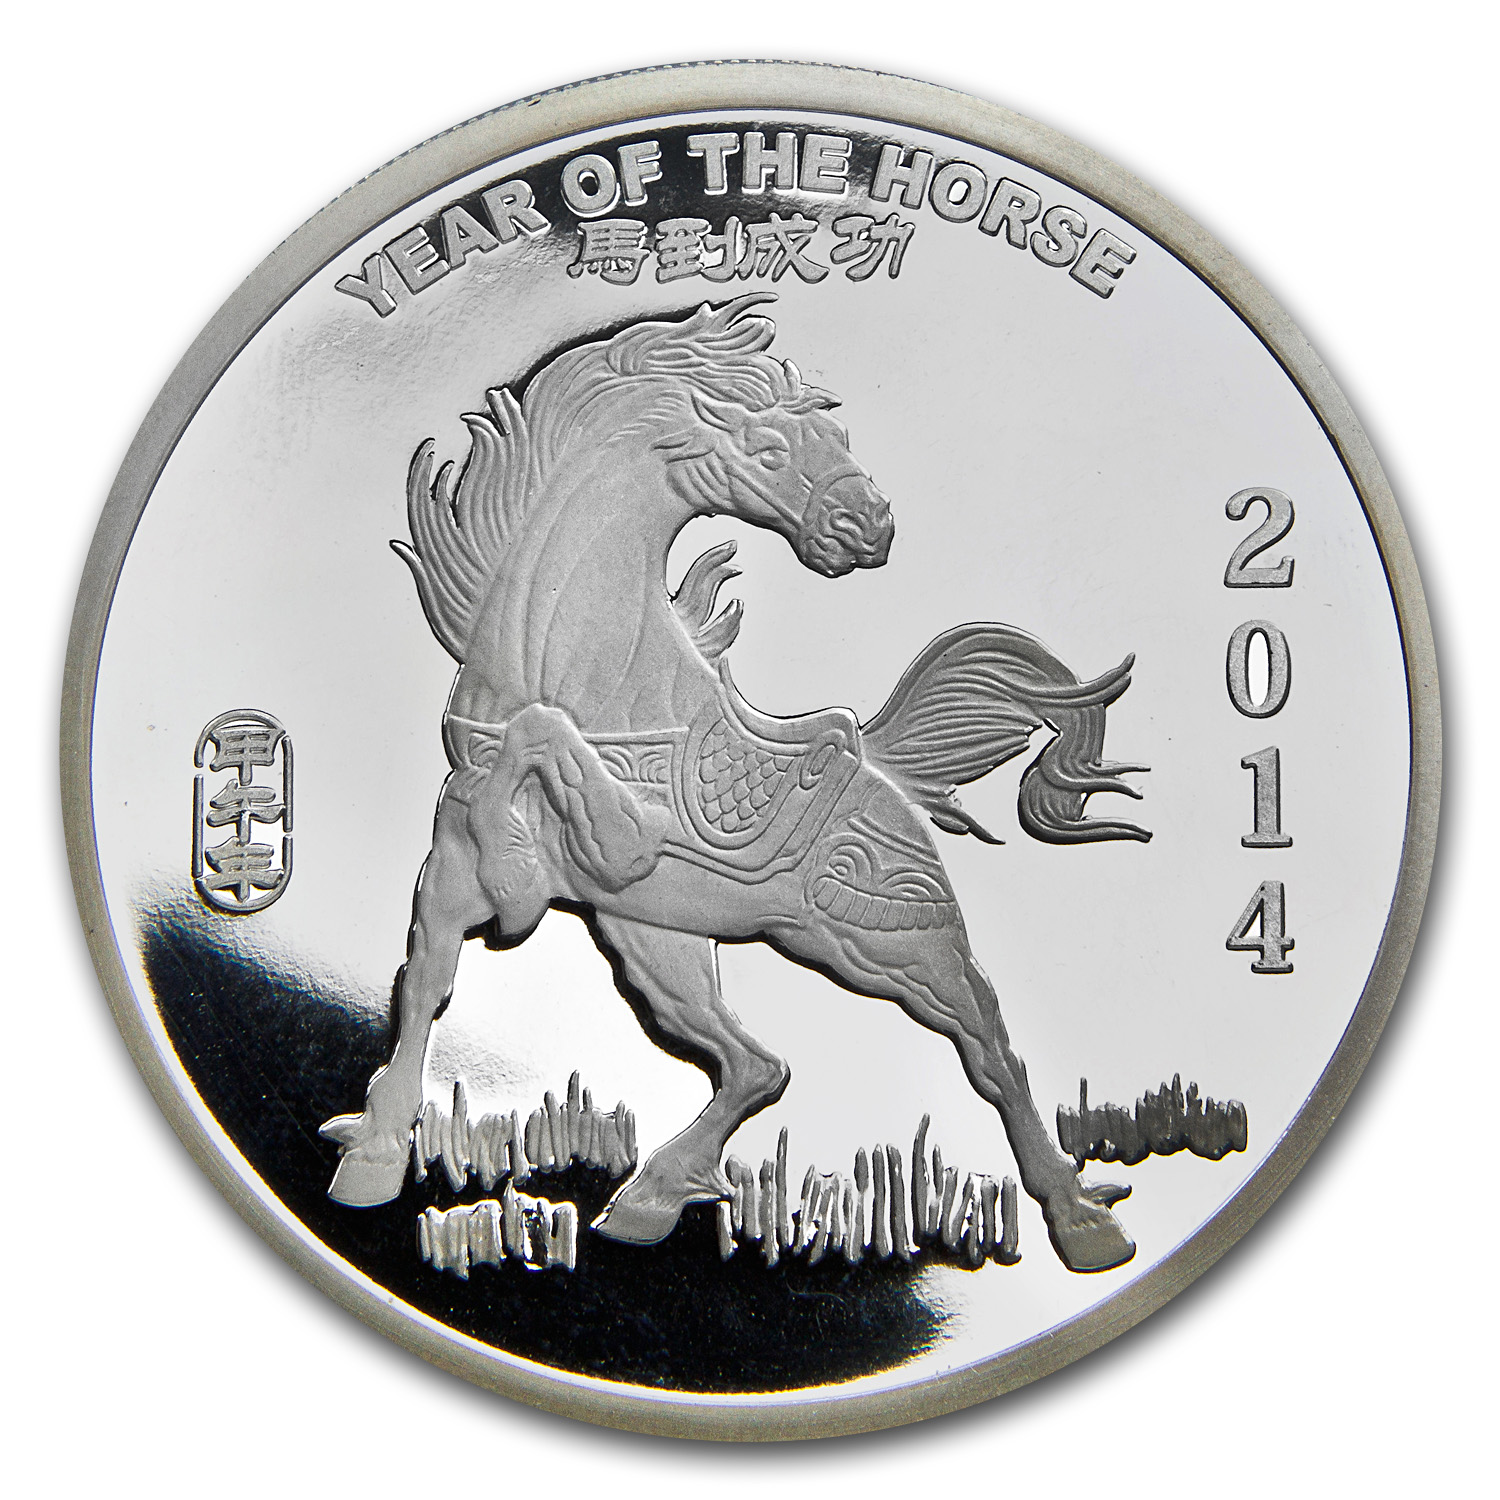 5 oz Silver Rounds - APMEX (2014 Year of the Horse)